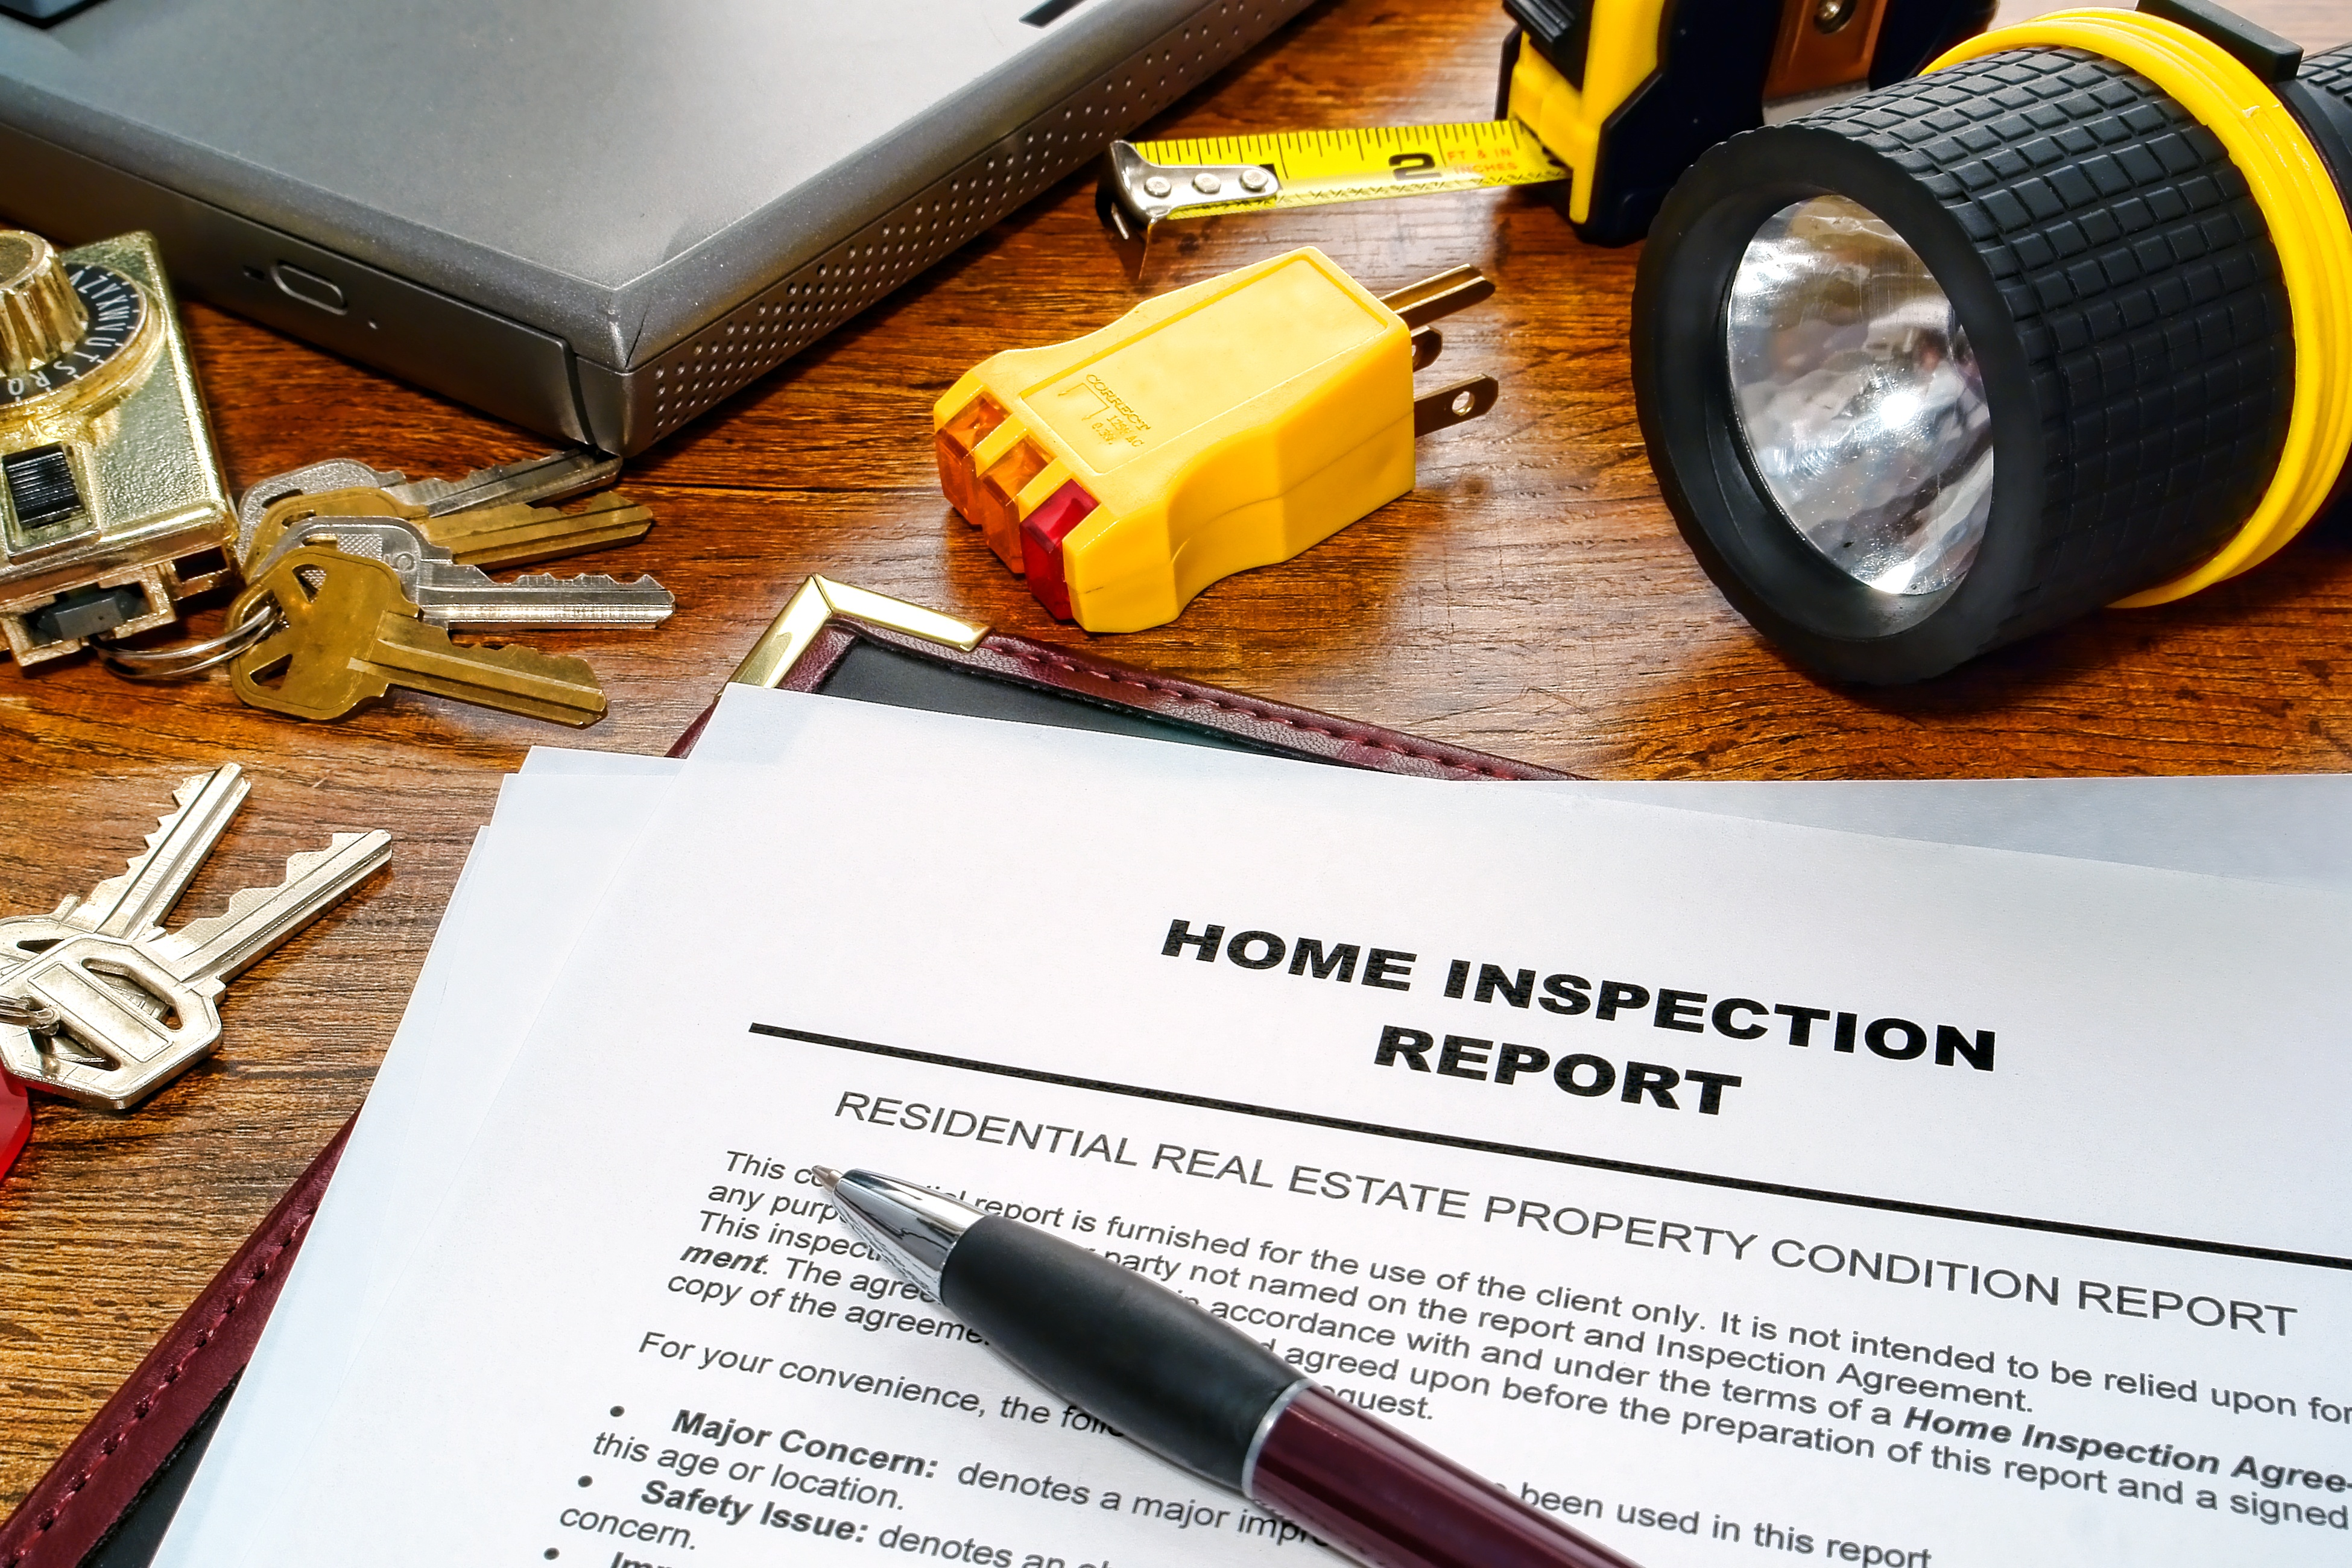 Six Issues To Take Seriously After A Home Inspection.